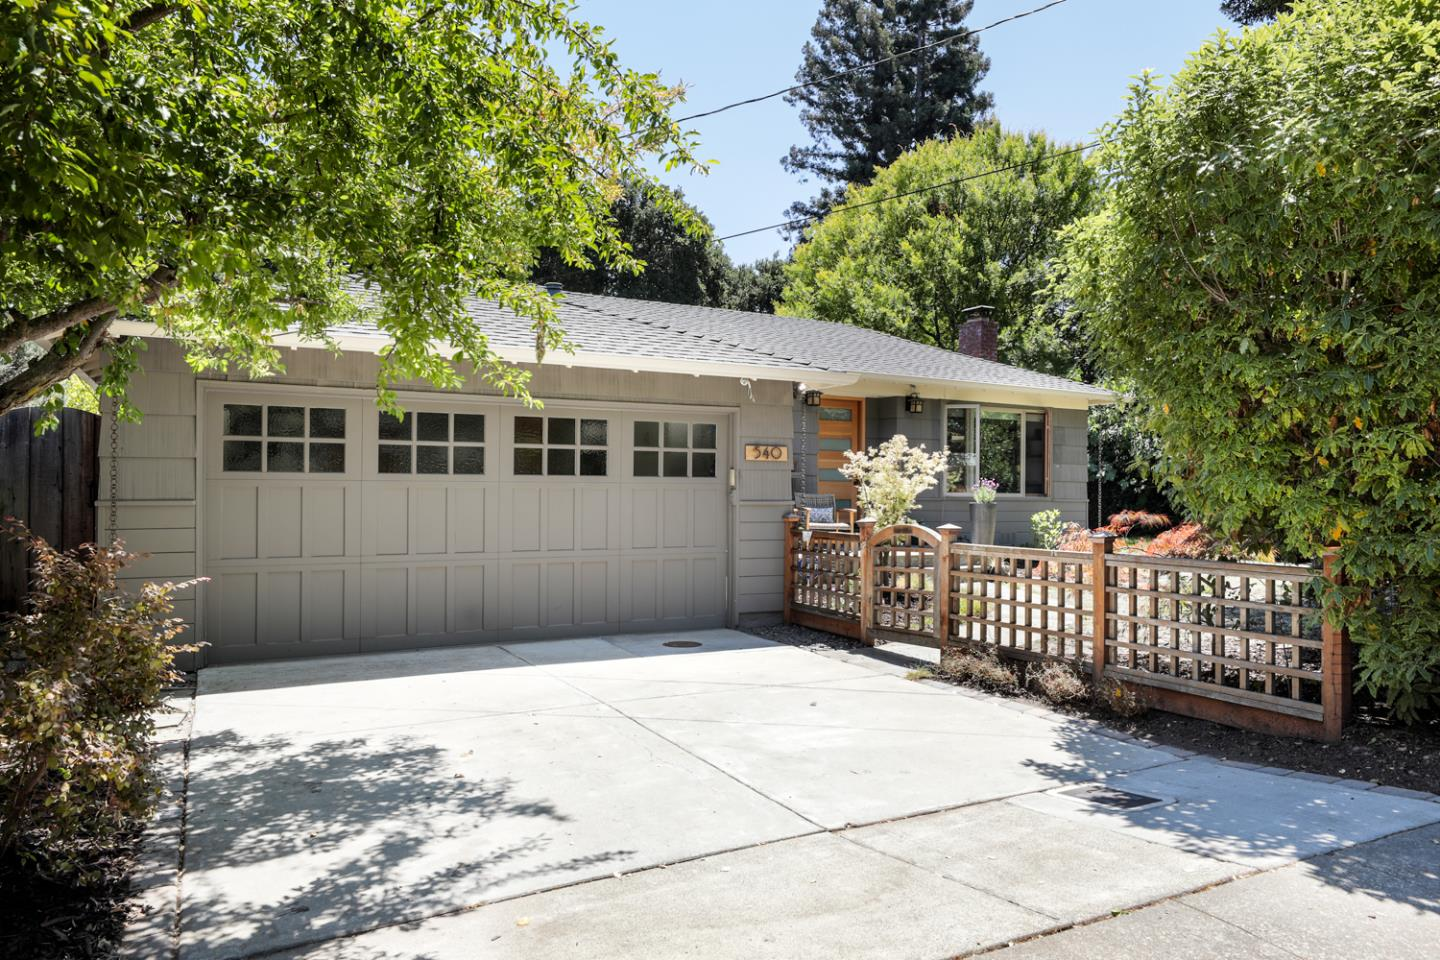 Located on a quiet tree lined street minutes to FB & downtown MP, this meticulously remodeled home welcomes you with a gated entry to a low-maintenance garden w/native plantings & fruit trees and slate porch. Contemporary spaces add warmth & comfort w/extensive use of rich woodwork & hardwood floors. Sun filled open floor plan w/picture windows & glass doors in great room ensemble of living, dining & custom remodeled chef's kitchen w/quartz and sandstone counters, quality stainless steel appliances create the perfect ambience for entertaining. The oversized primary suite has French doors to wood deck & backyard, a luxurious bath, and closet w/organizers. The 2nd Bedroom is serviced by a stylishly remodeled hall bath. The well optimized floor-plan has bonus office nook overlooking the backyard. Attached 2-car garage w/ample storage, cabinets & laundry room w/ quartz counters. Great for starter home or ideal for downsizing while keeping the key essentials to maintain your lifestyle.